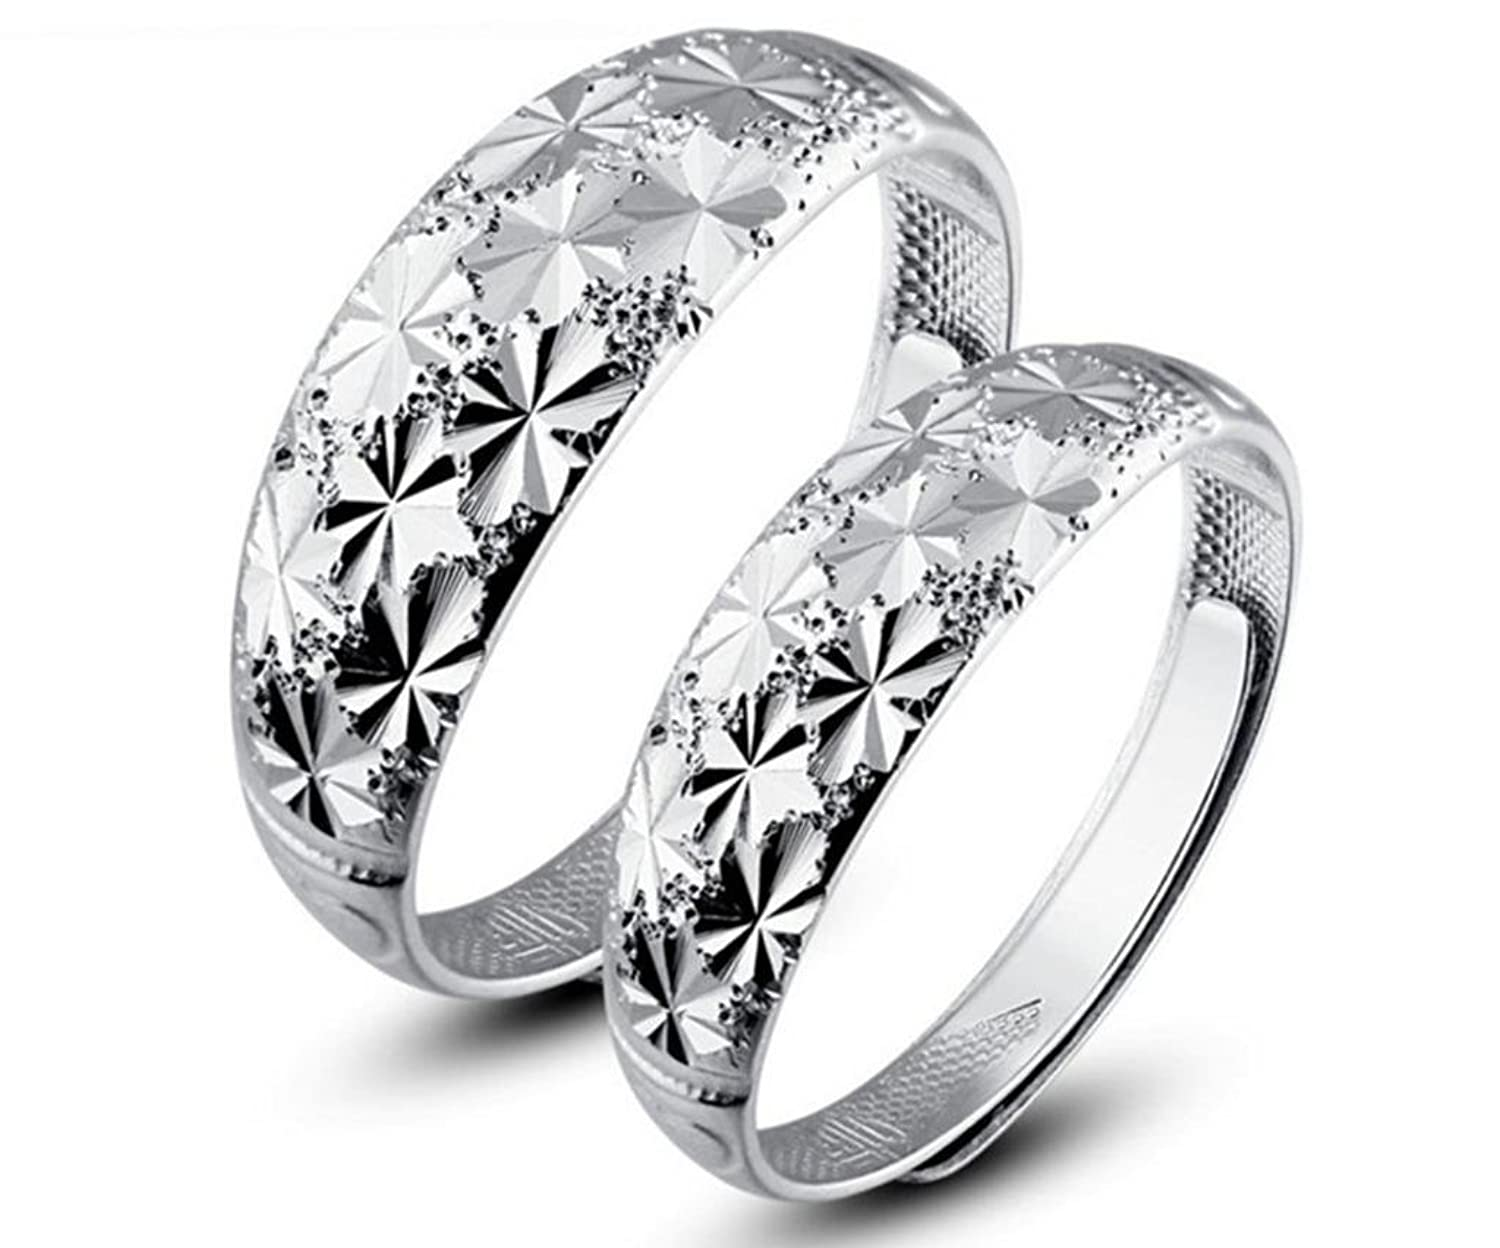 Infinite U 925 Sterling Silver Snowflake CouplesLovers Adjustable